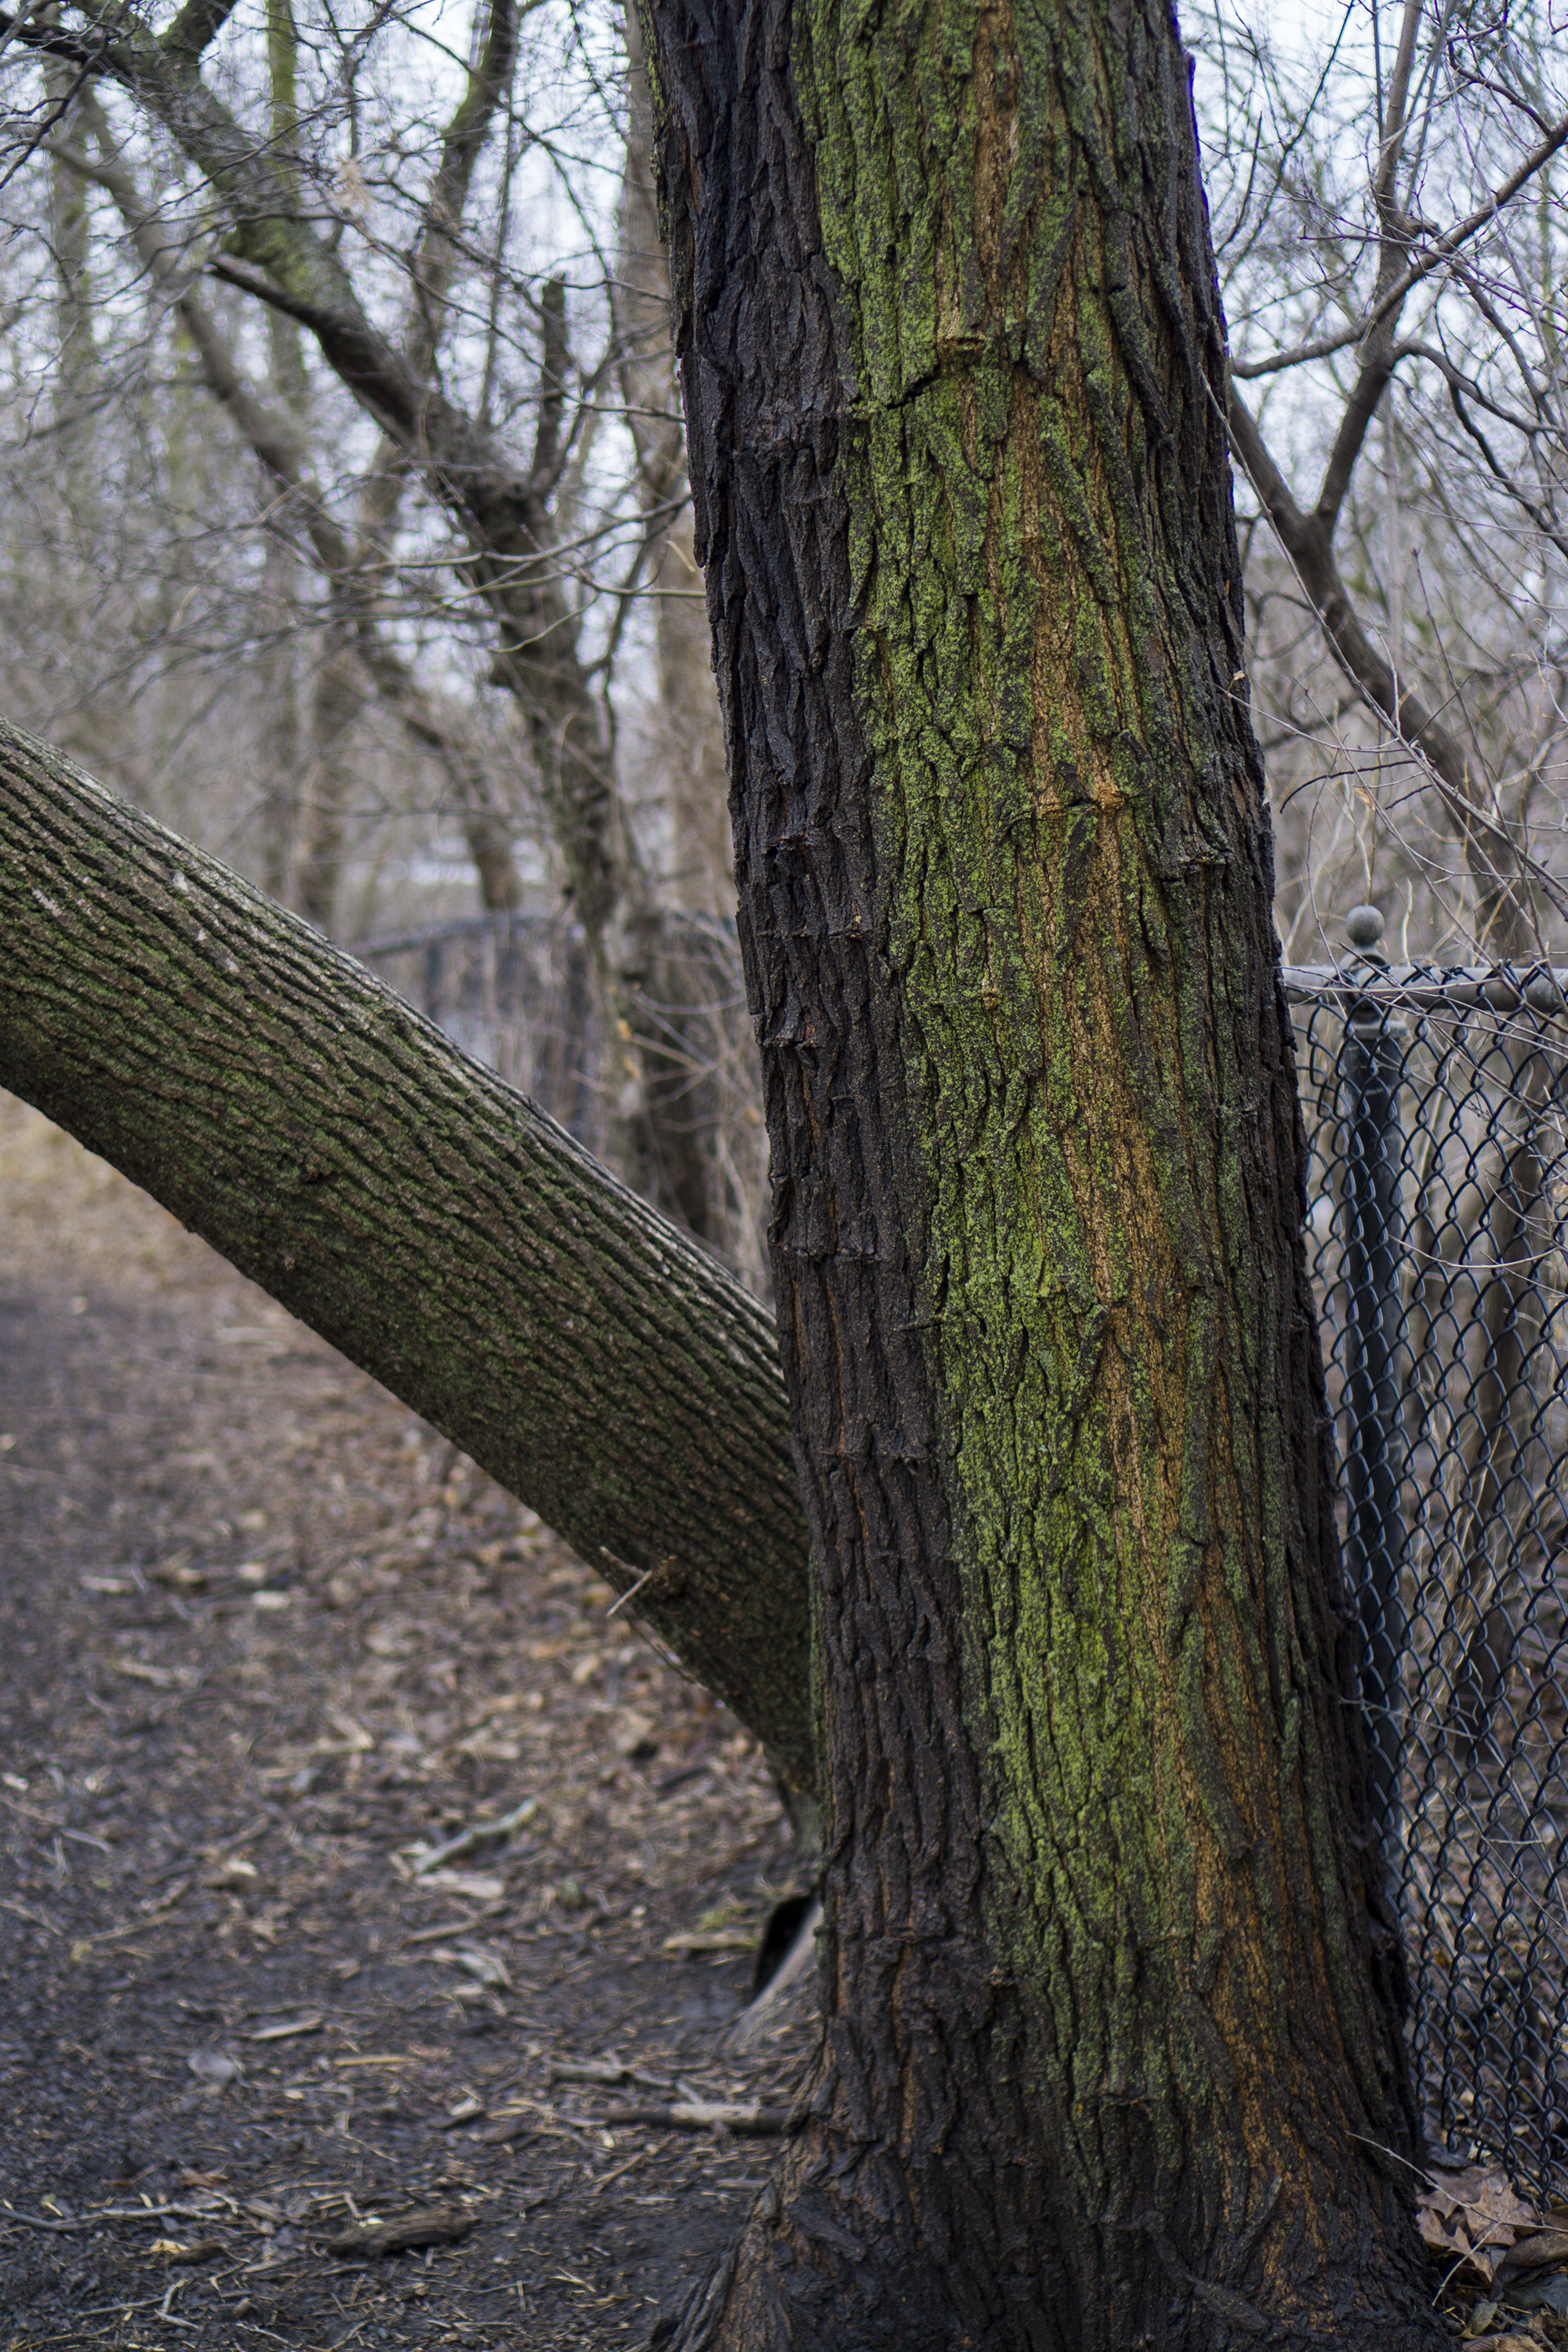 Mossy tree trunks against a fence in Gompers Park, Chicago IL / Darker than Green